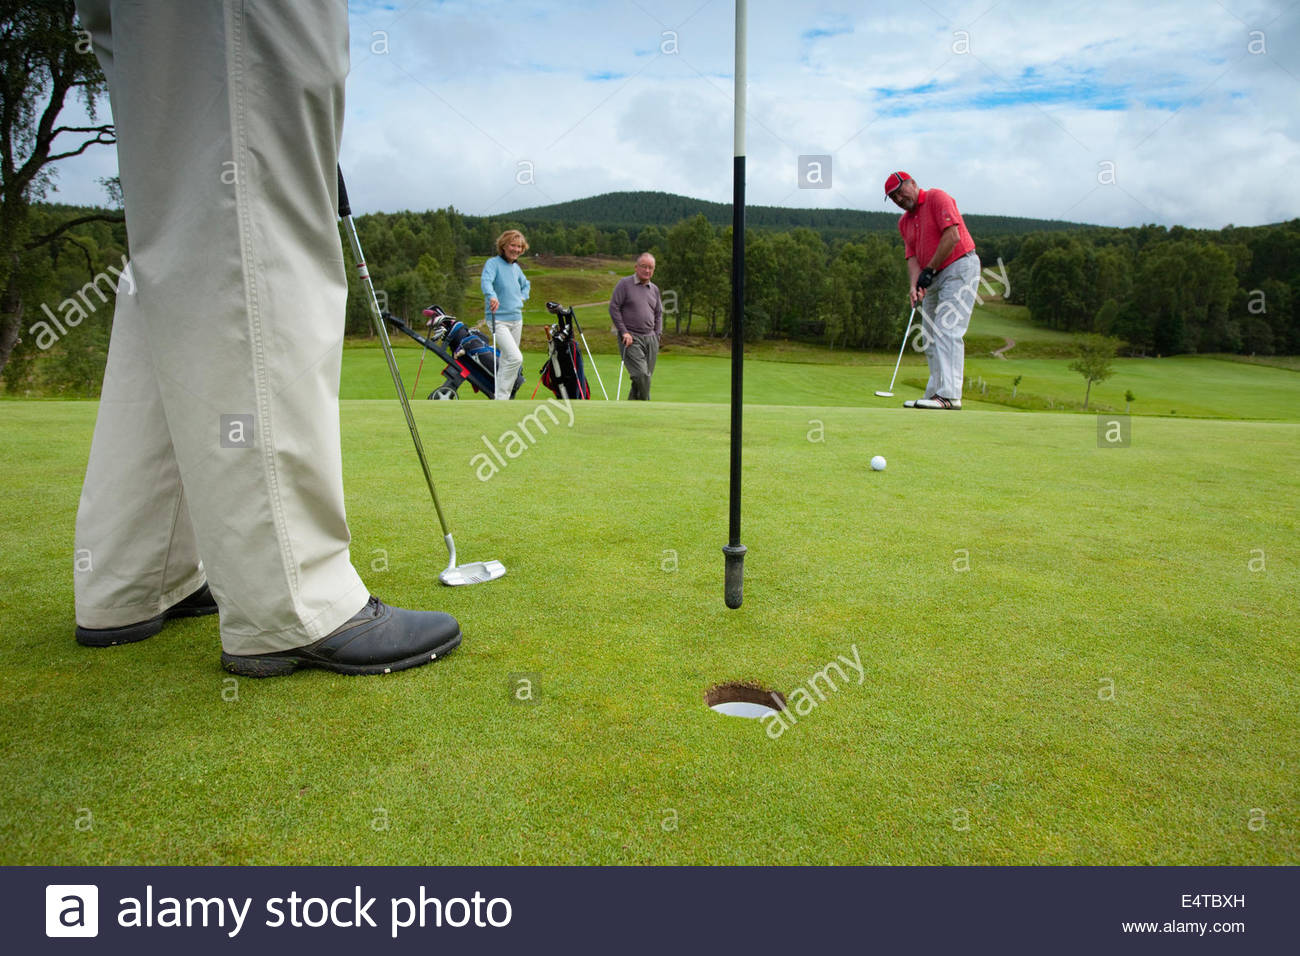 Four people play a round of golf at the Carrbridge Golf Club, Cairngorms National Park, Highlands of Scotland. - Stock Image